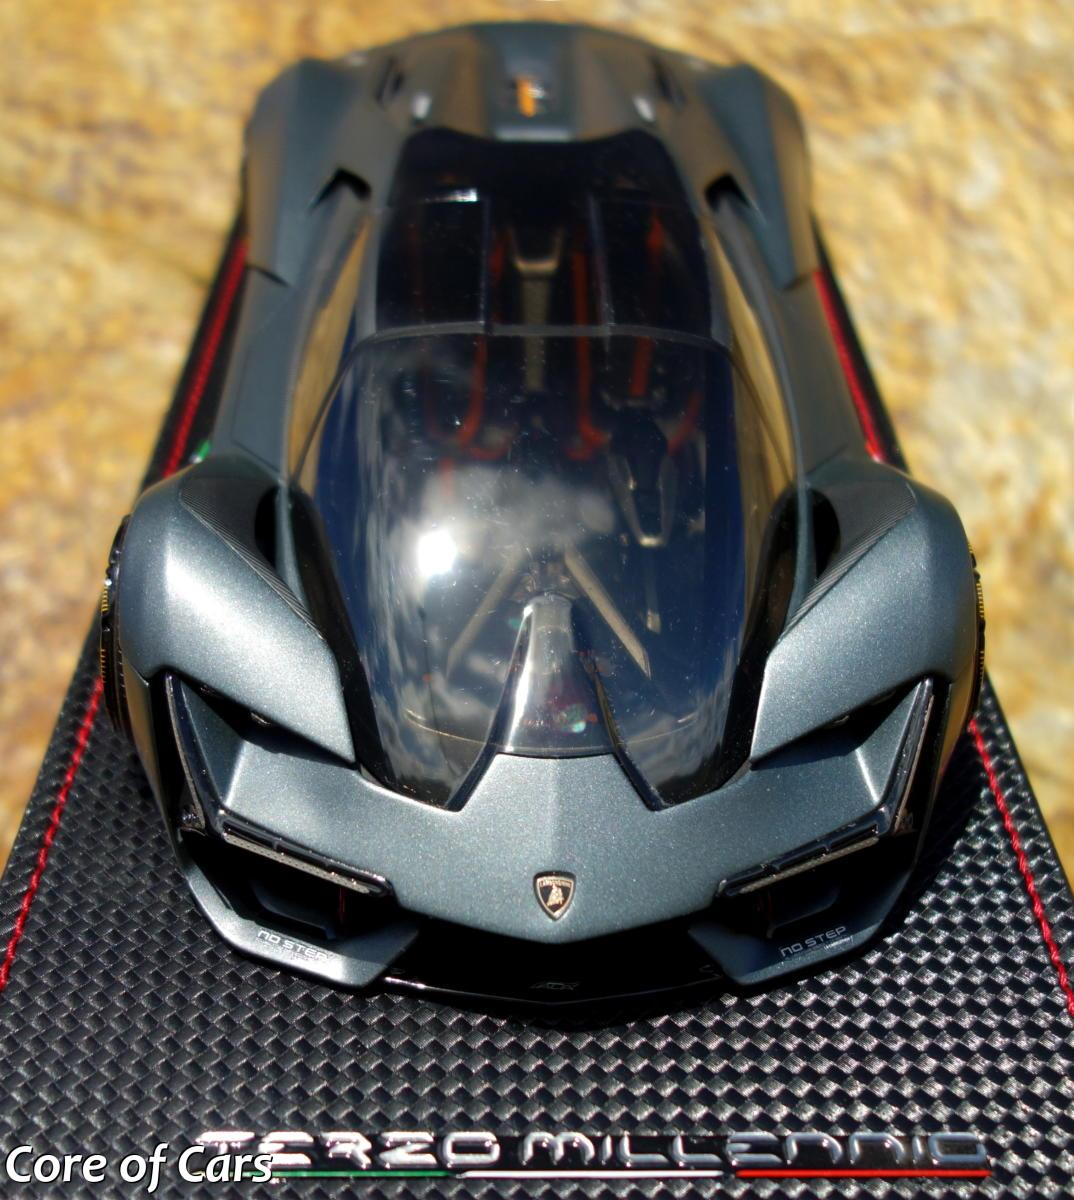 Enjoying Mr S Lamborghini Terzo Millennio Scale Model Core Of Cars